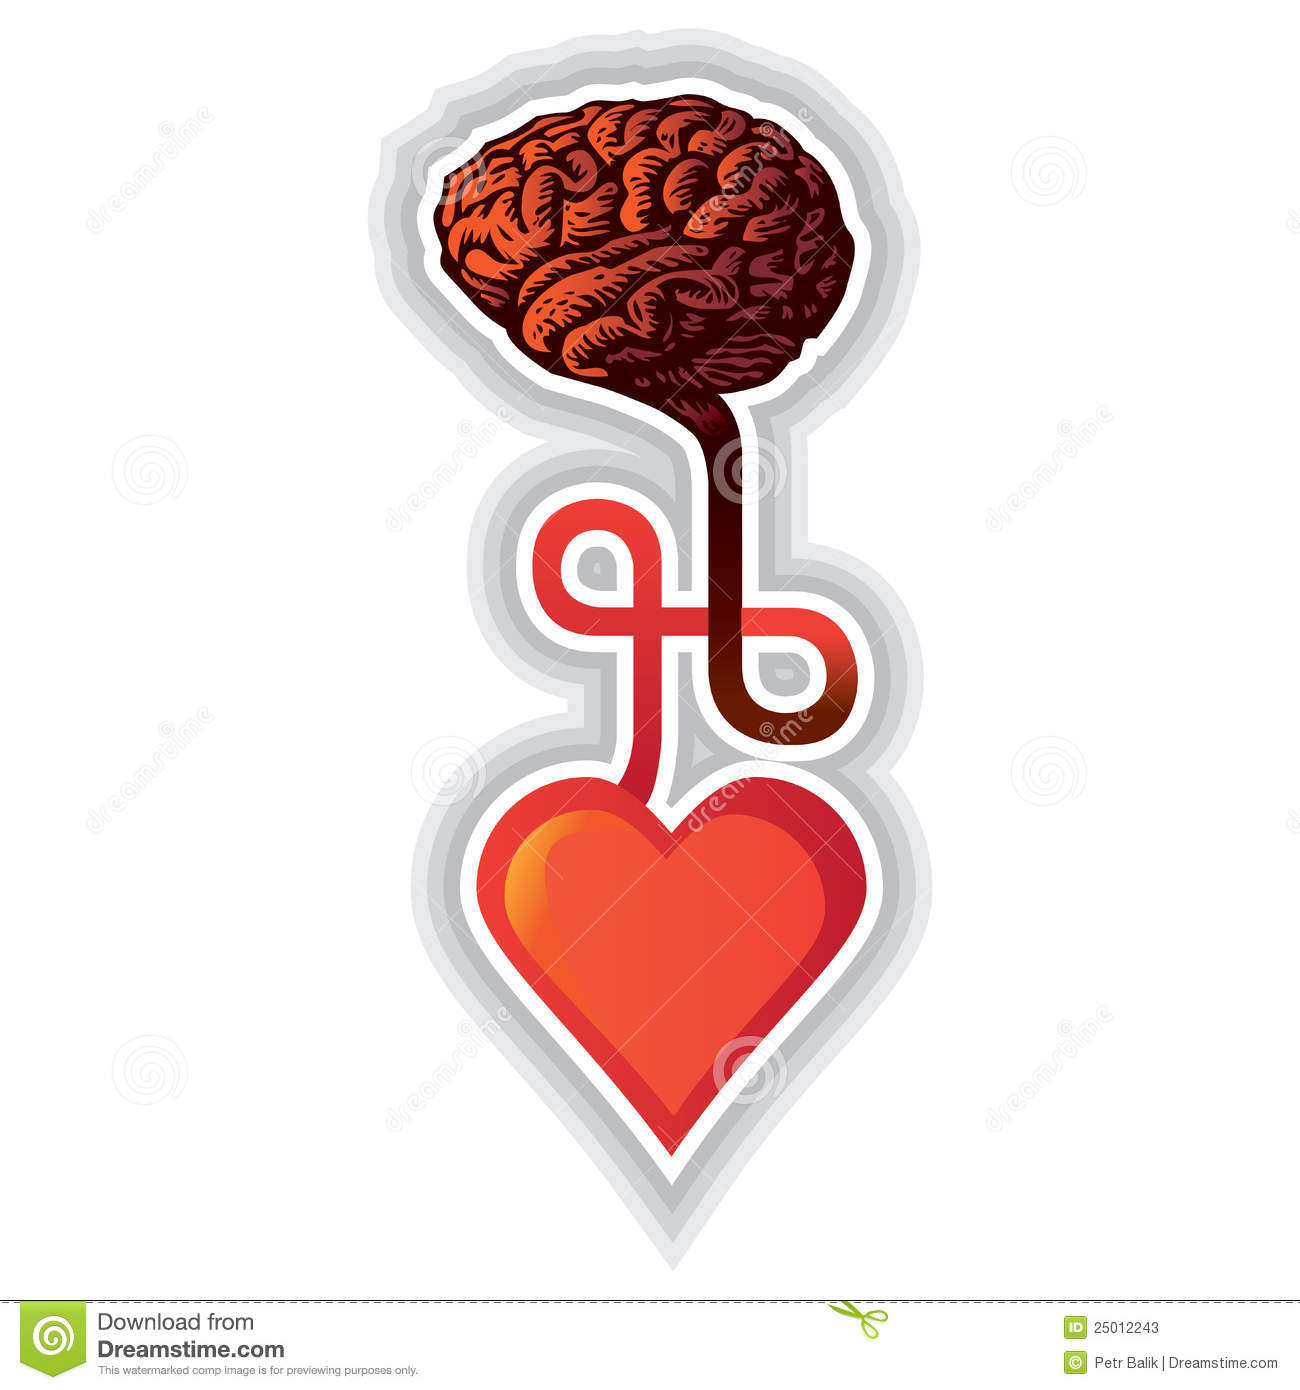 Connection between heart and brain - illustration.